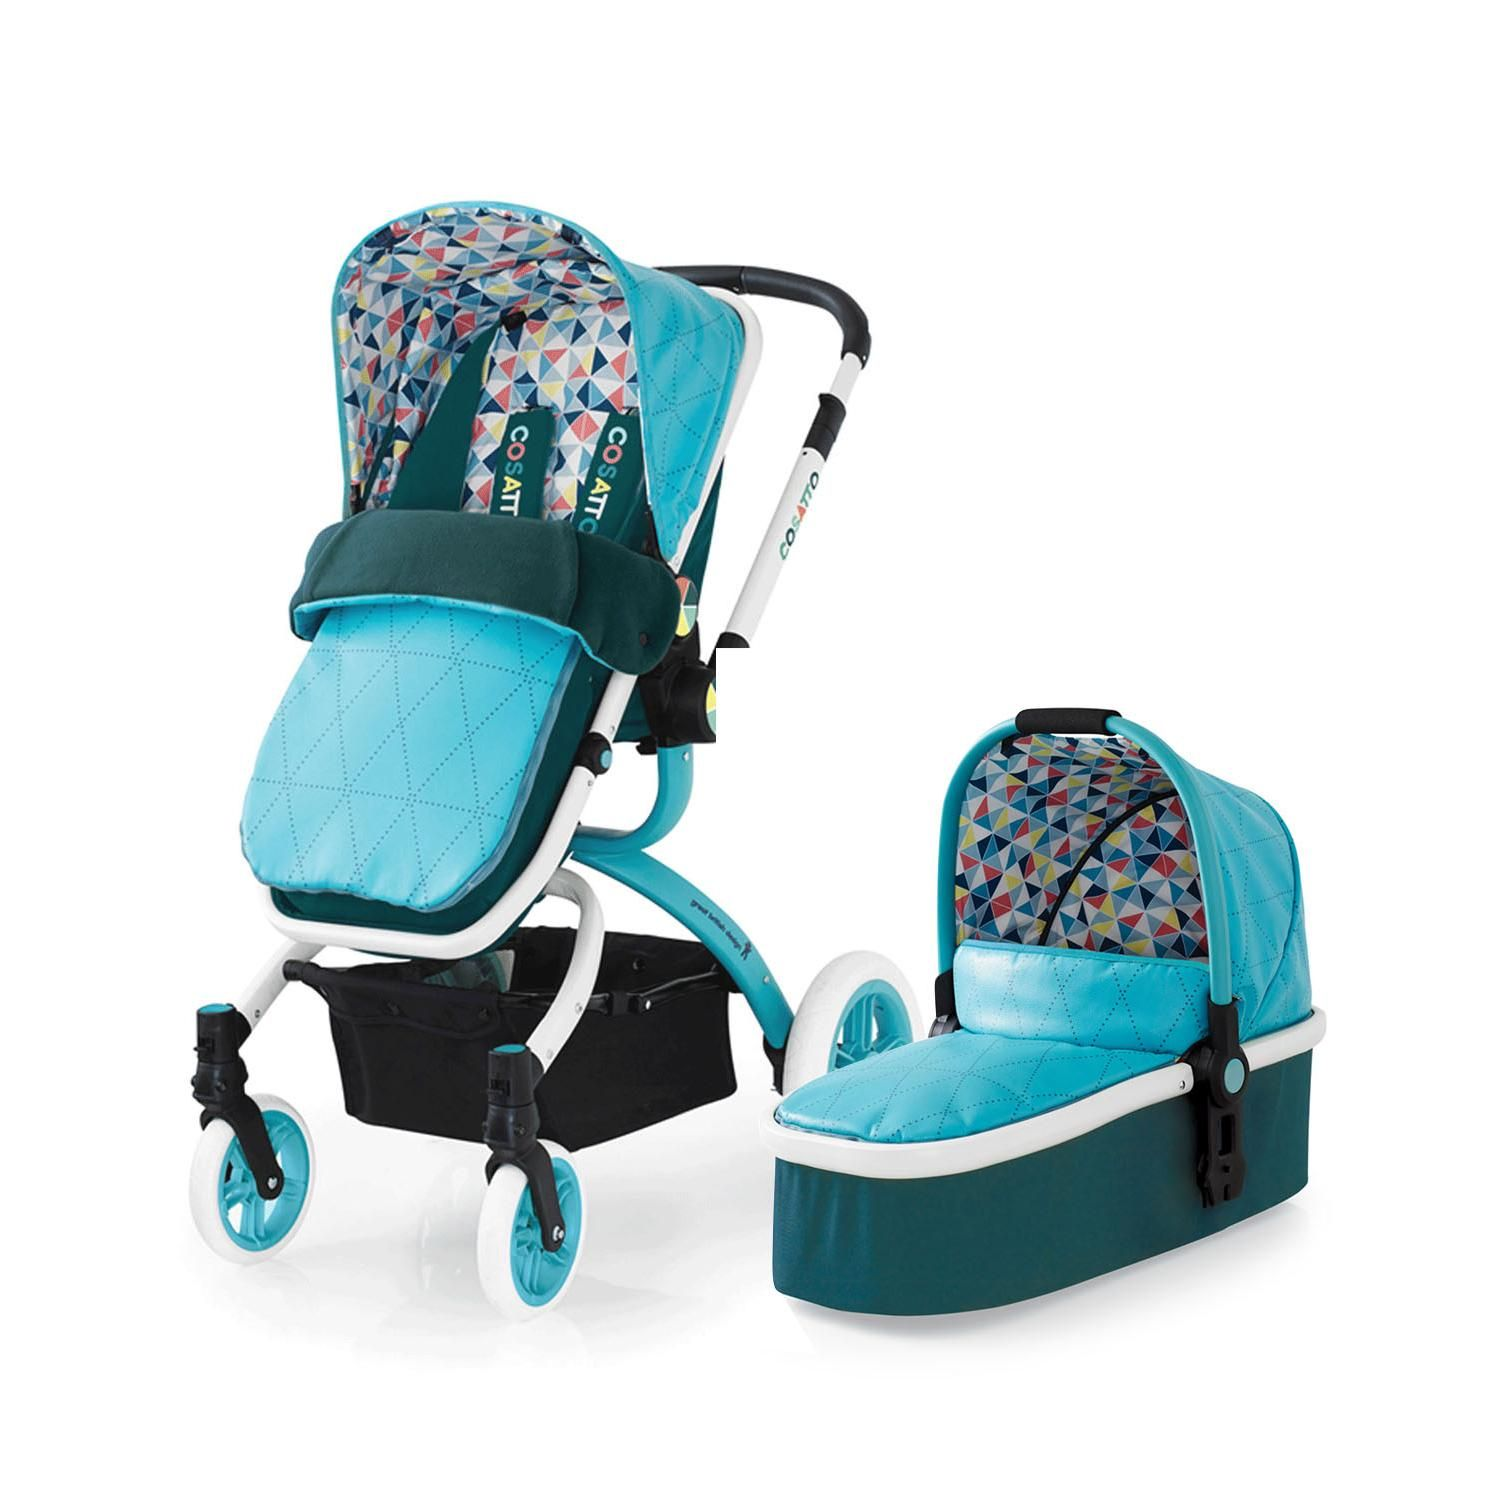 Image result for turquoise green pram Travel system